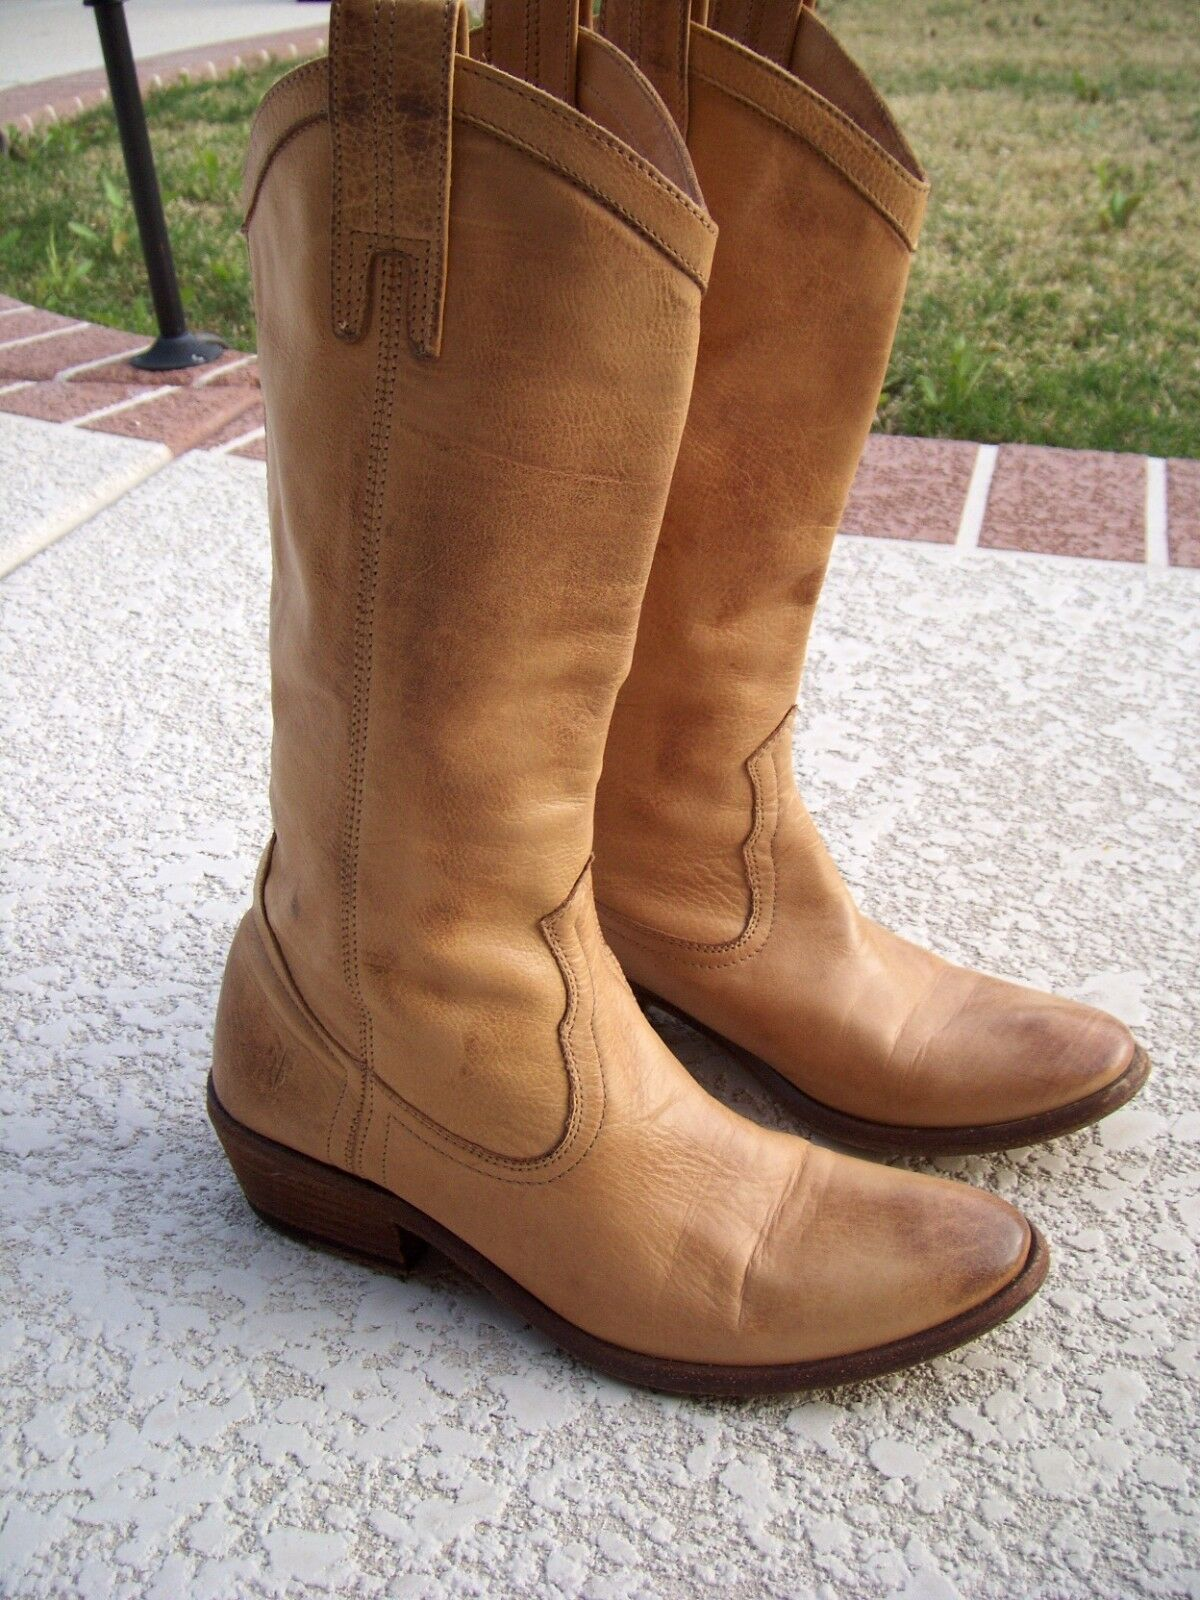 Frye Style 77685 Carson Boot Size 5.5 $378